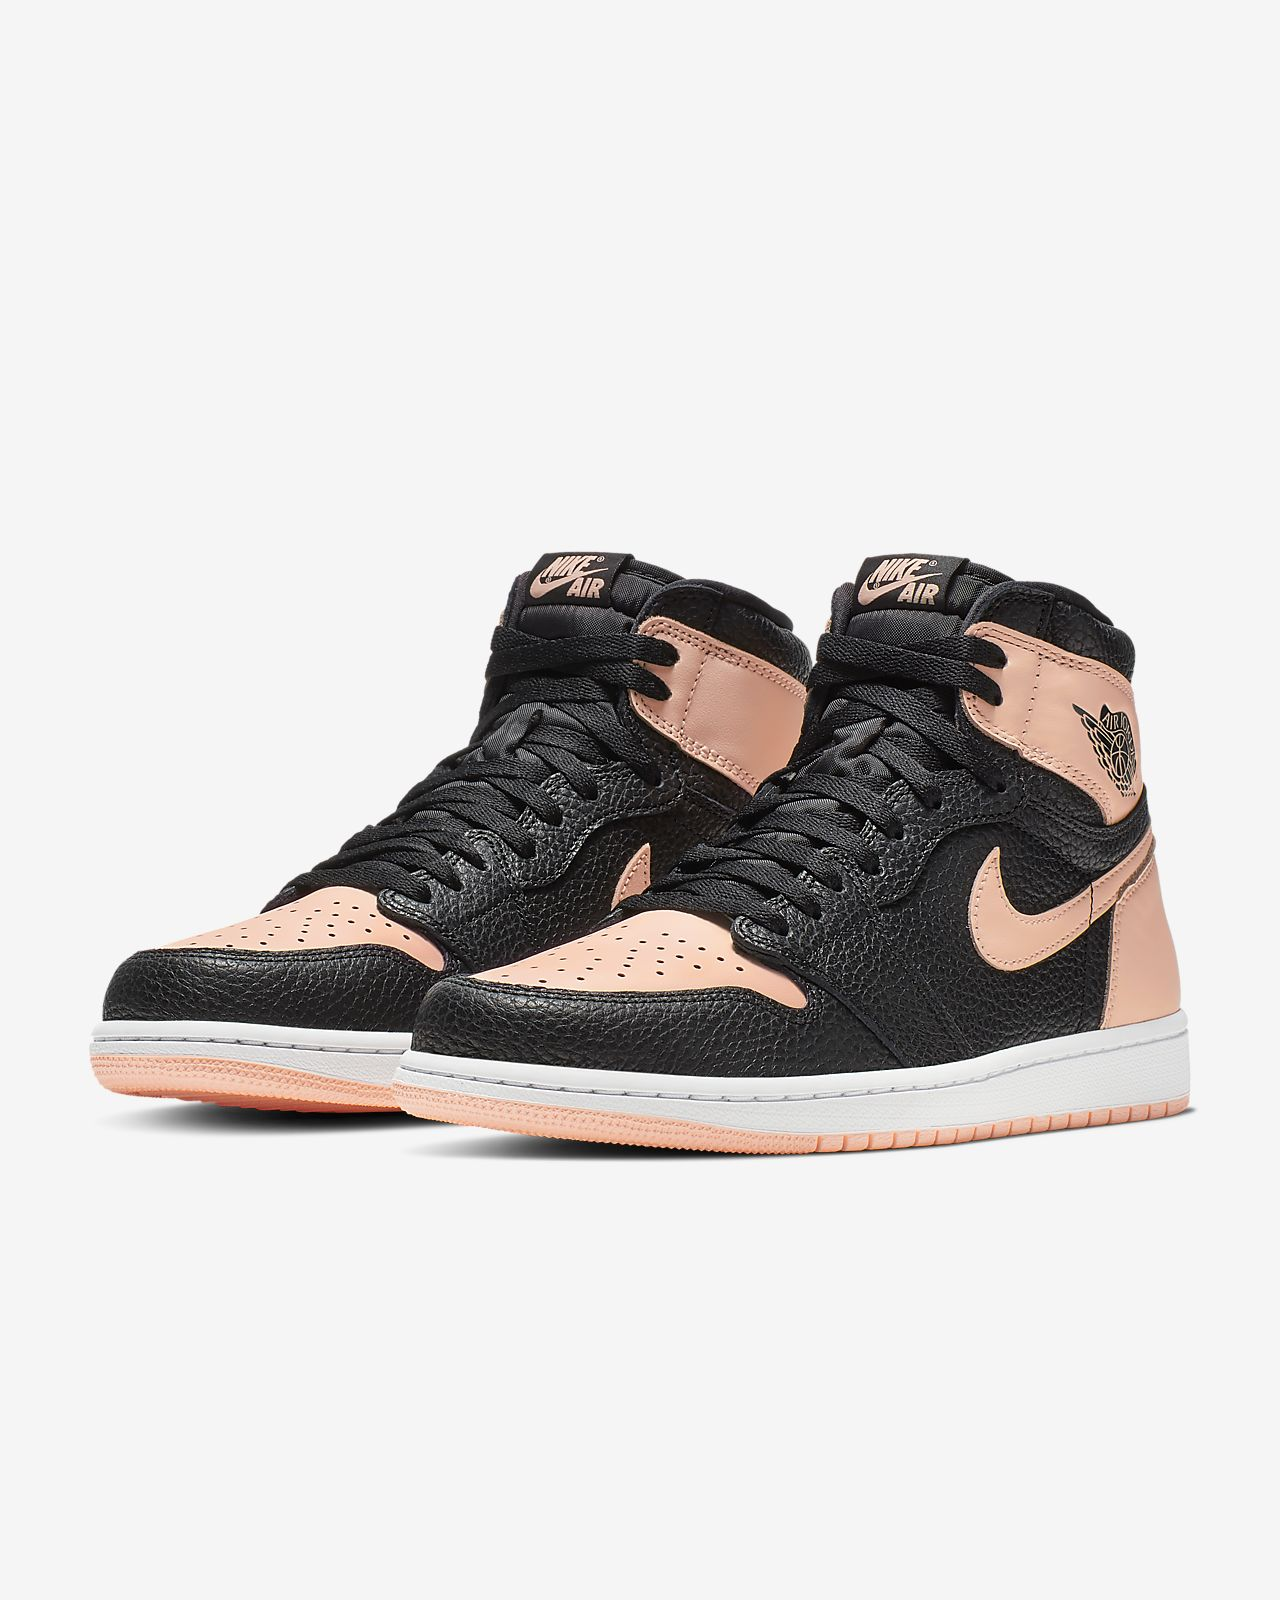 4415b9476634 Air Jordan 1 Retro High OG Shoe. Nike.com SG